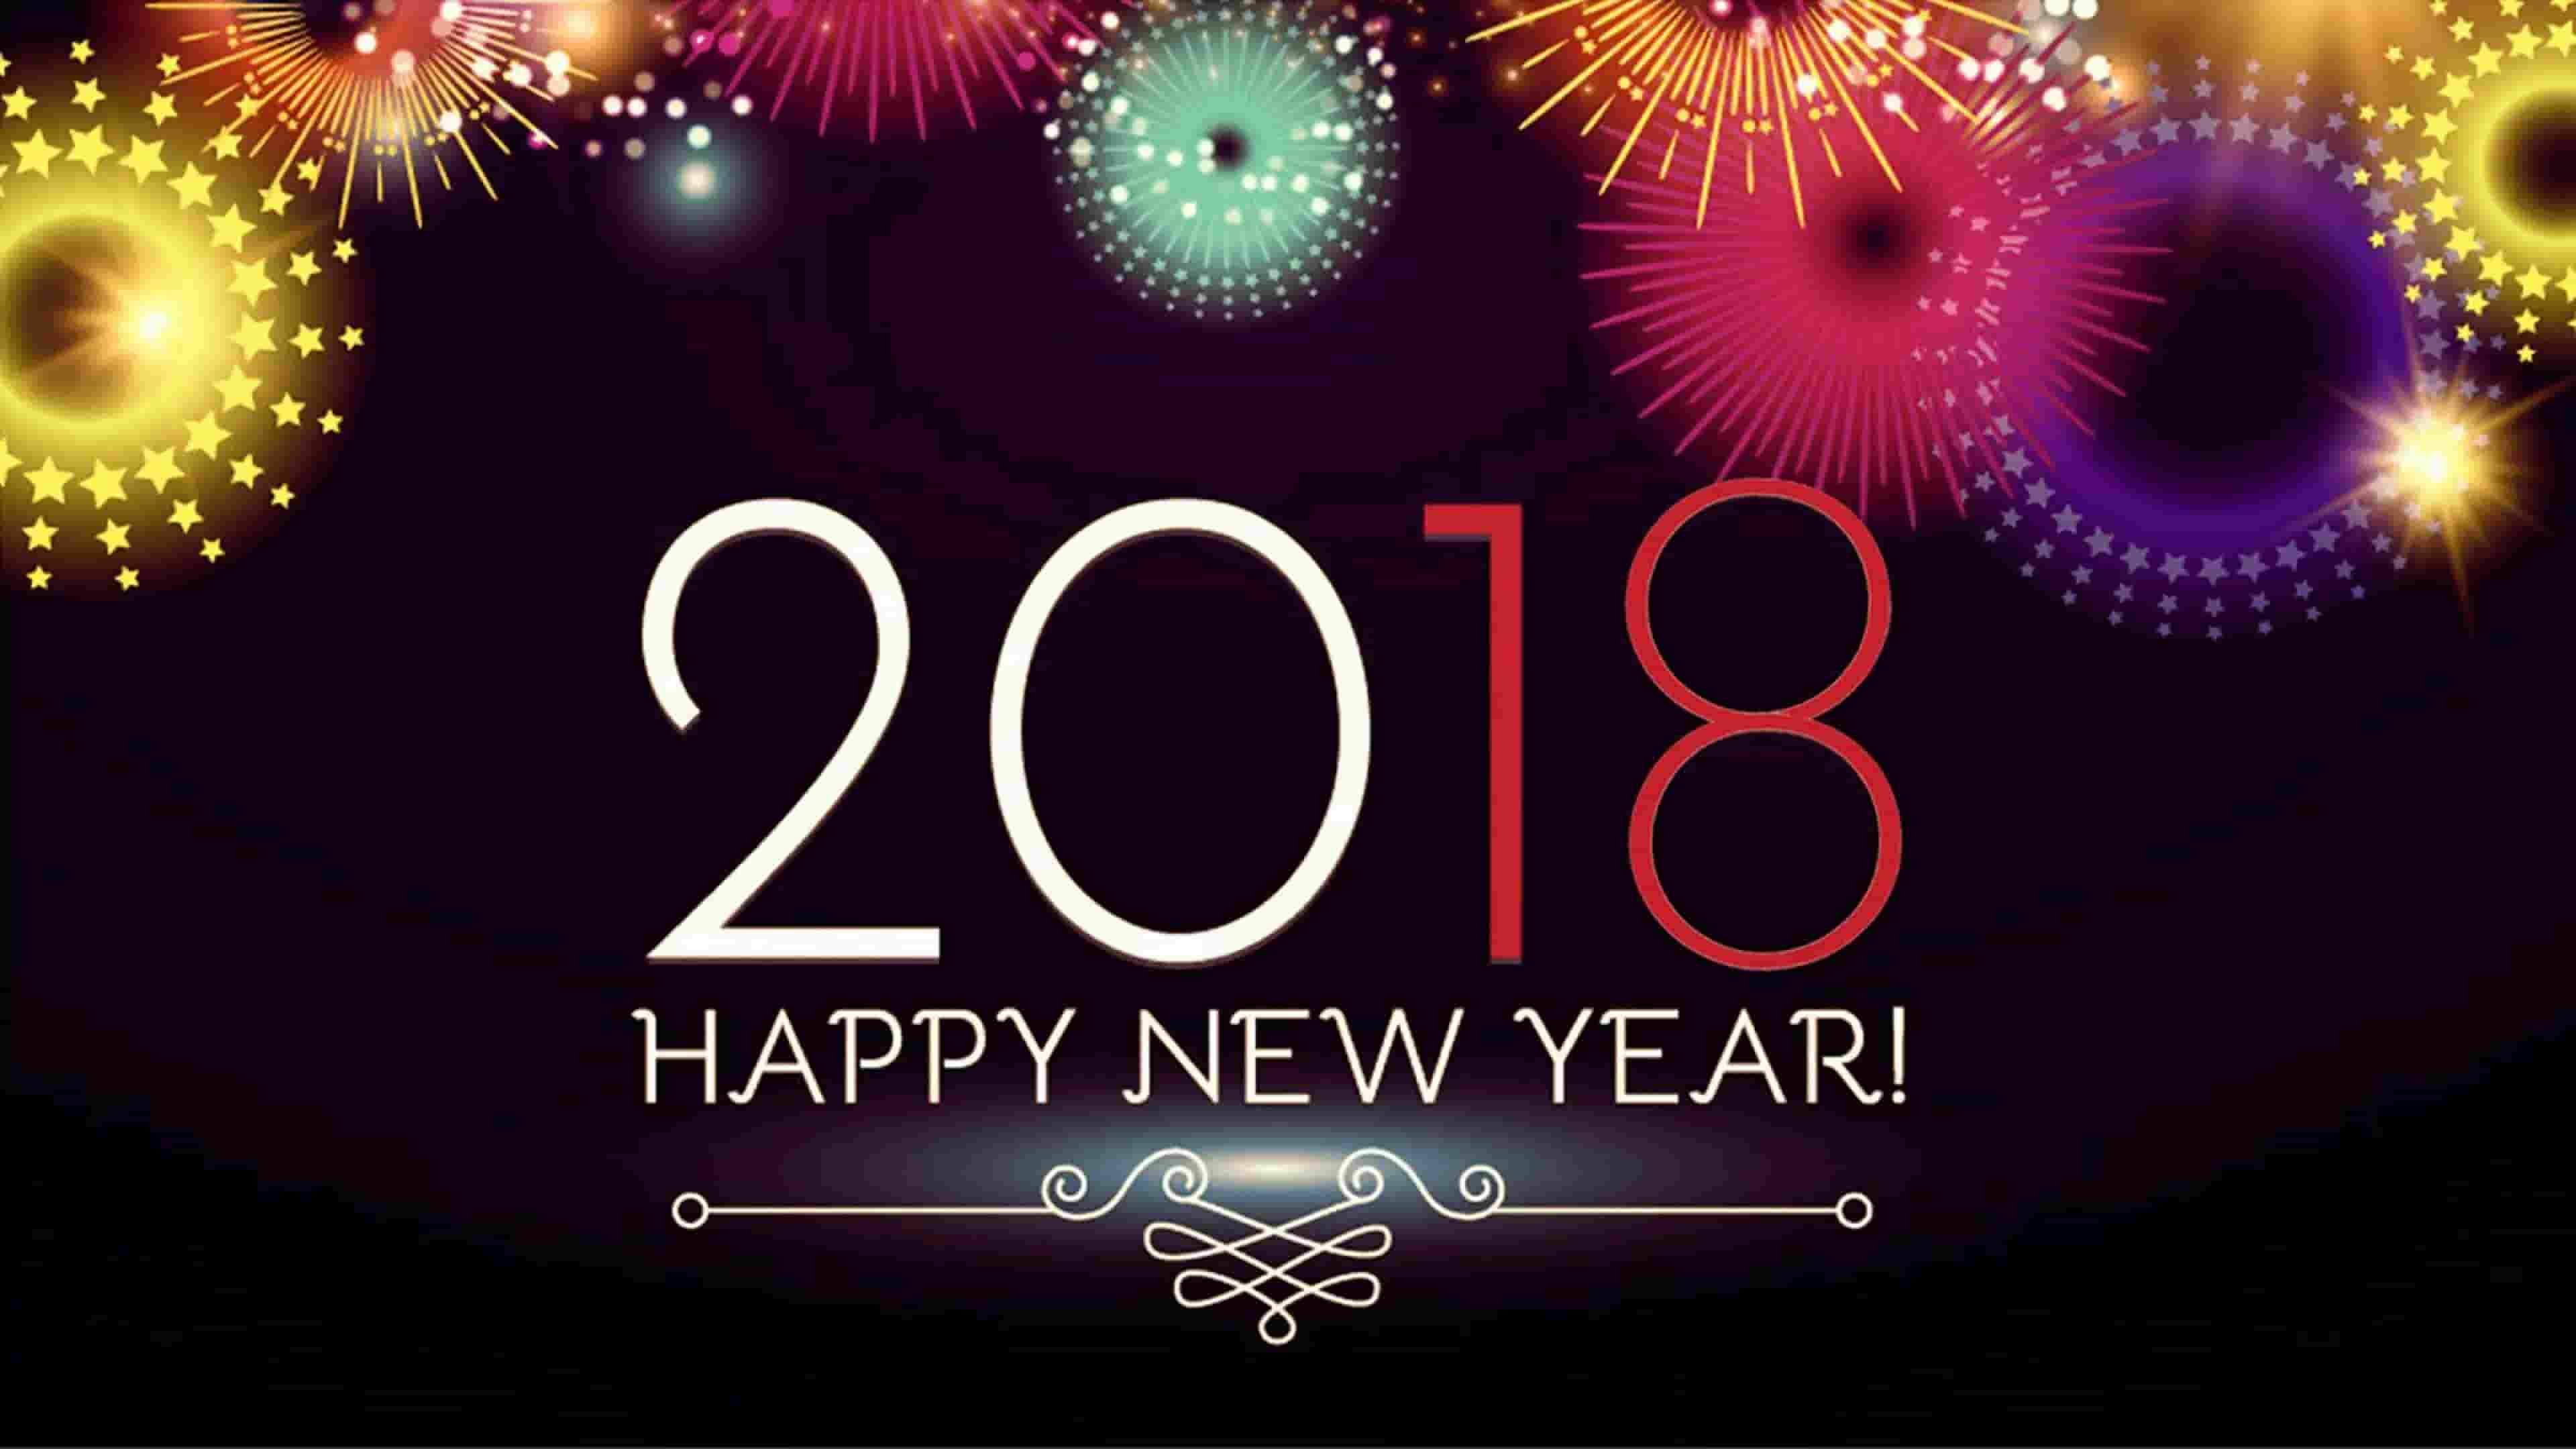 Wishing A New Year 2018!